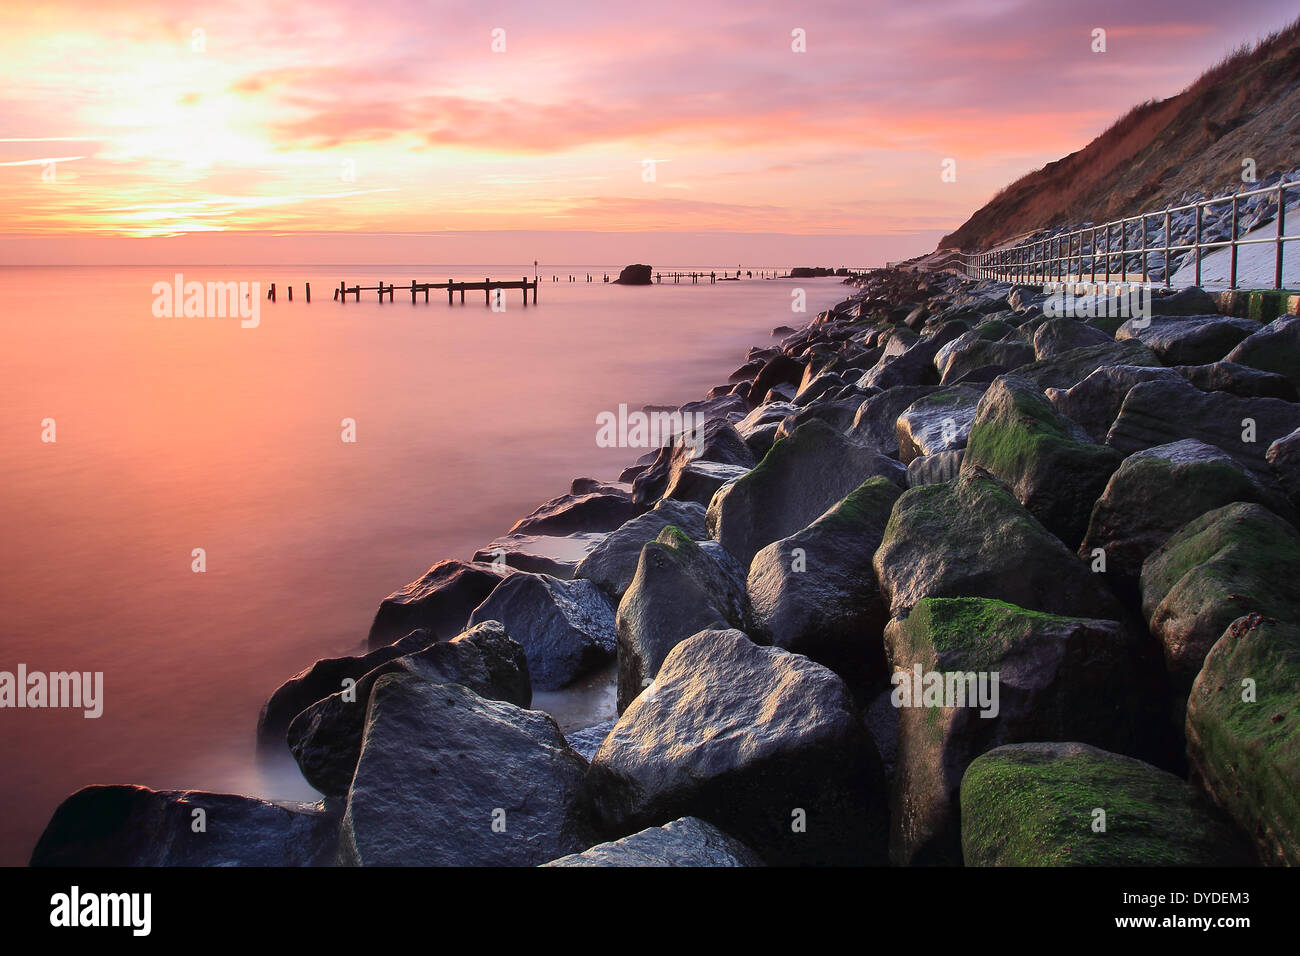 A view of Corton sea defences. - Stock Image